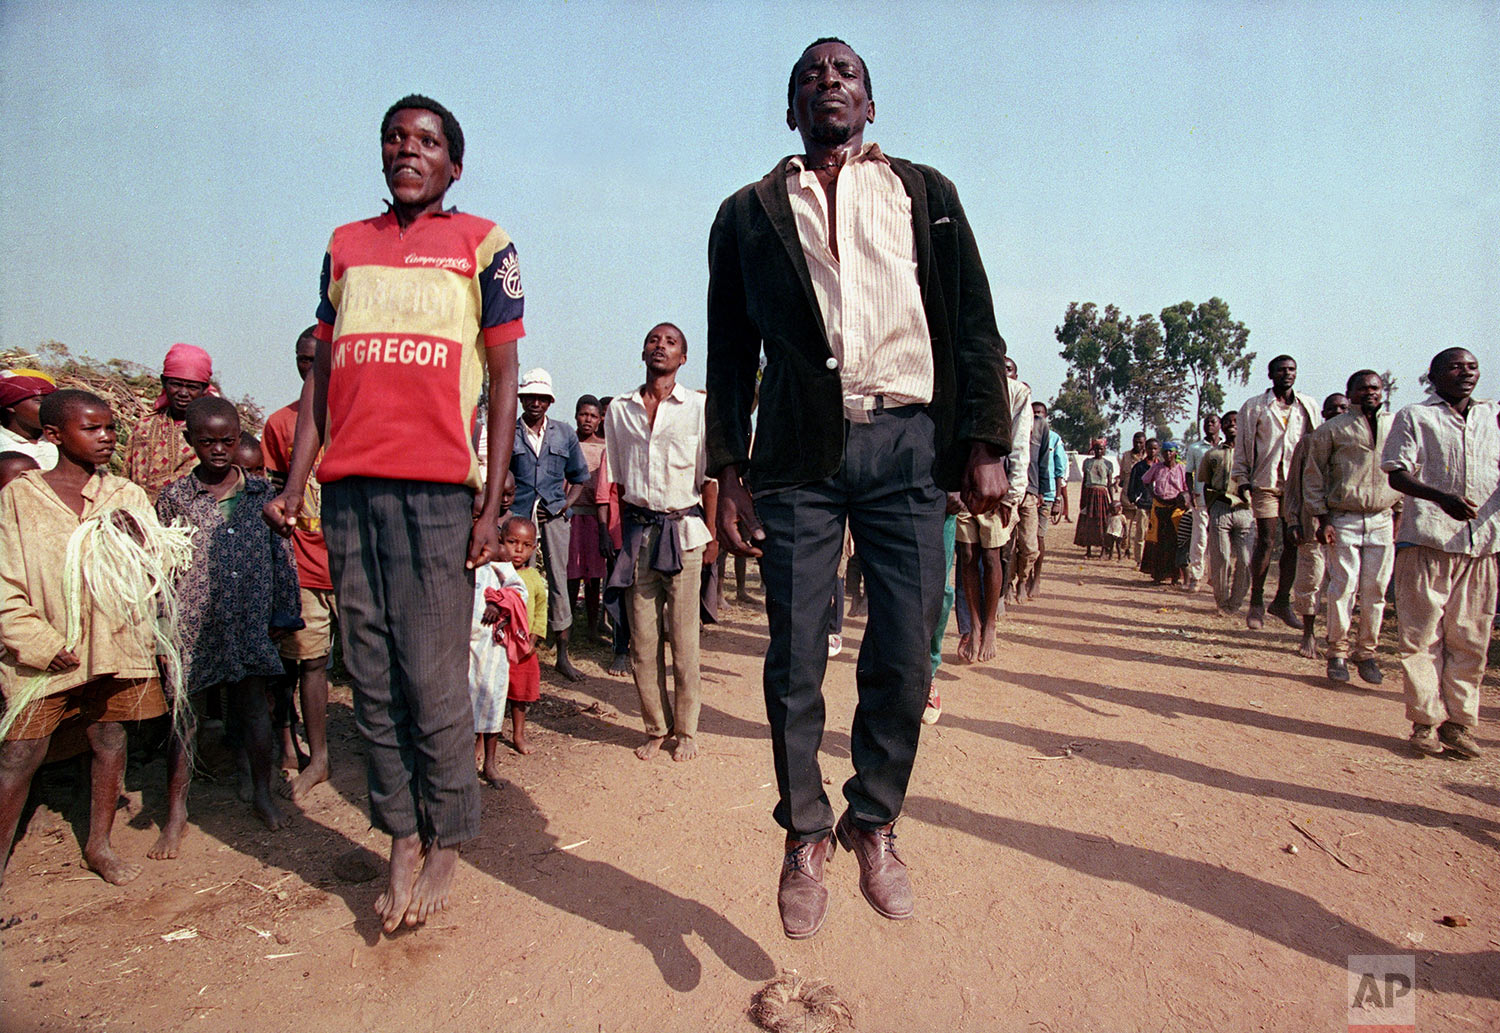 Displaced Hutu civilians in Cyanika, about 50 miles southwest of Kigali, jump in the air as part of government training of new Hutu militias in Rwanda, June 17, 1994. (AP Photo/Jean-Marc Bouju)